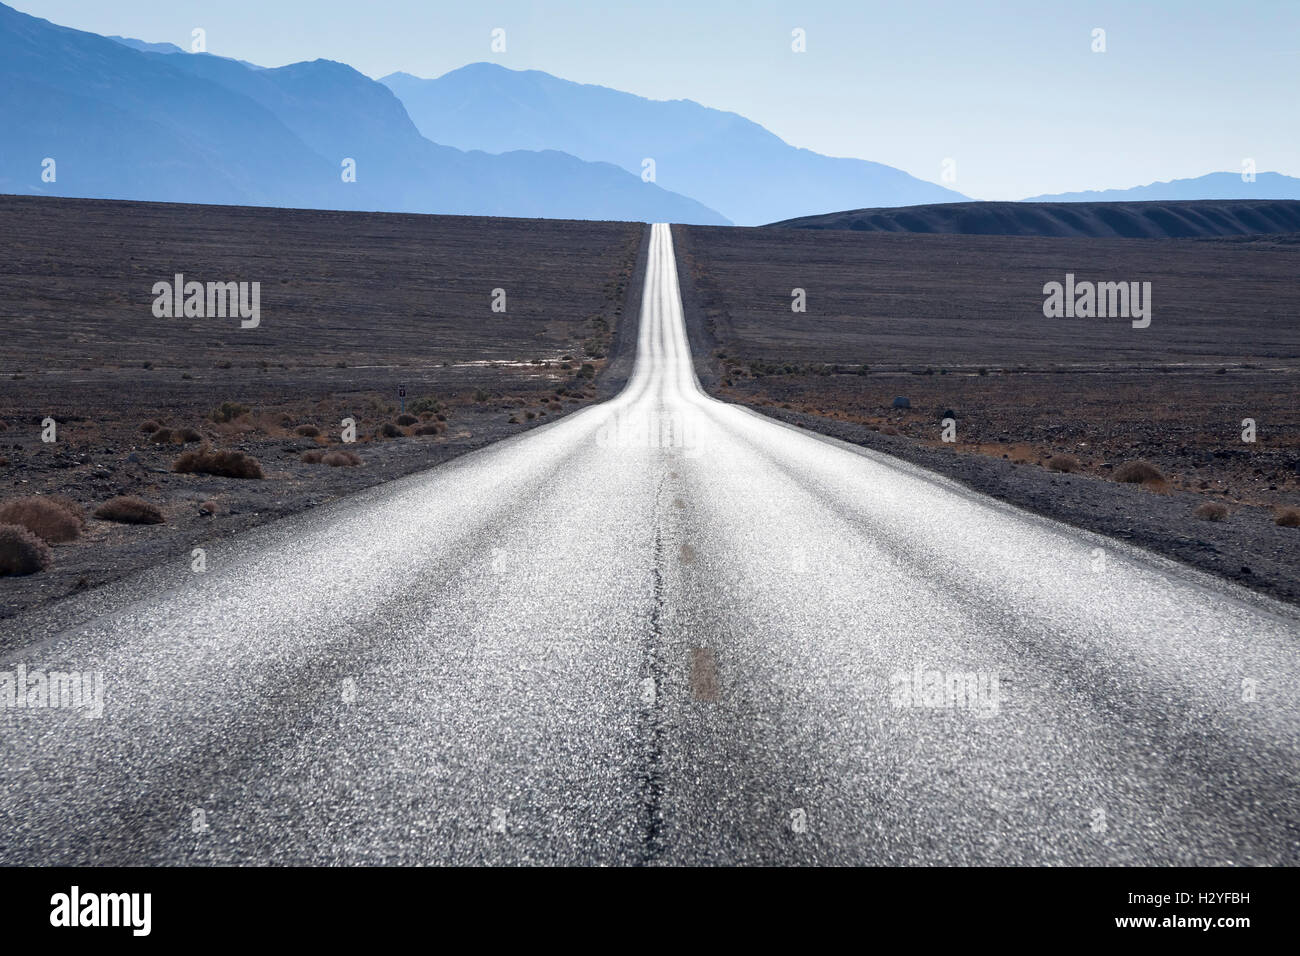 Straight road towards mountain range in horizon at Death Valley, USA - Stock Image